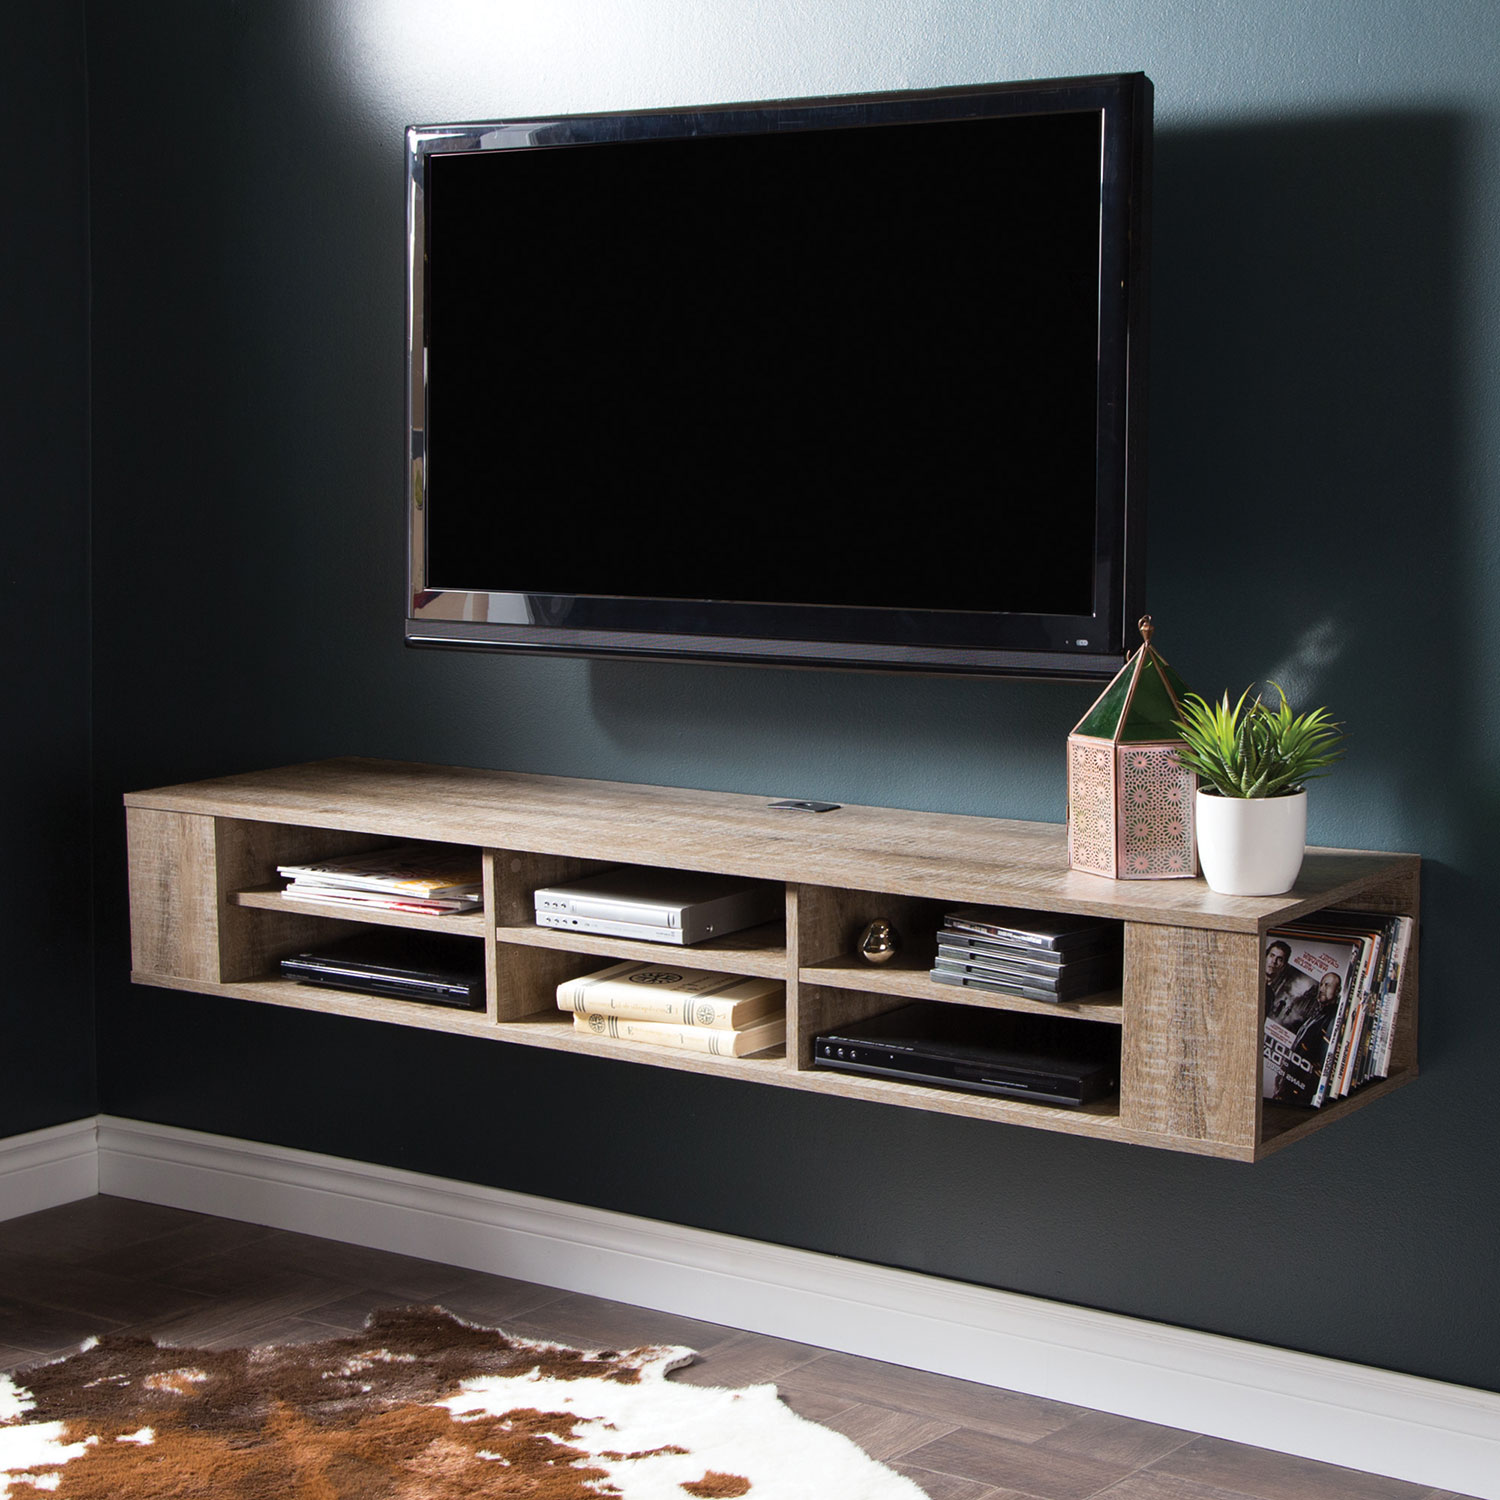 south shore  tv console wall mount  weathered oak  tv stands  - south shore  tv console wall mount  weathered oak  tv stands  bestbuy canada